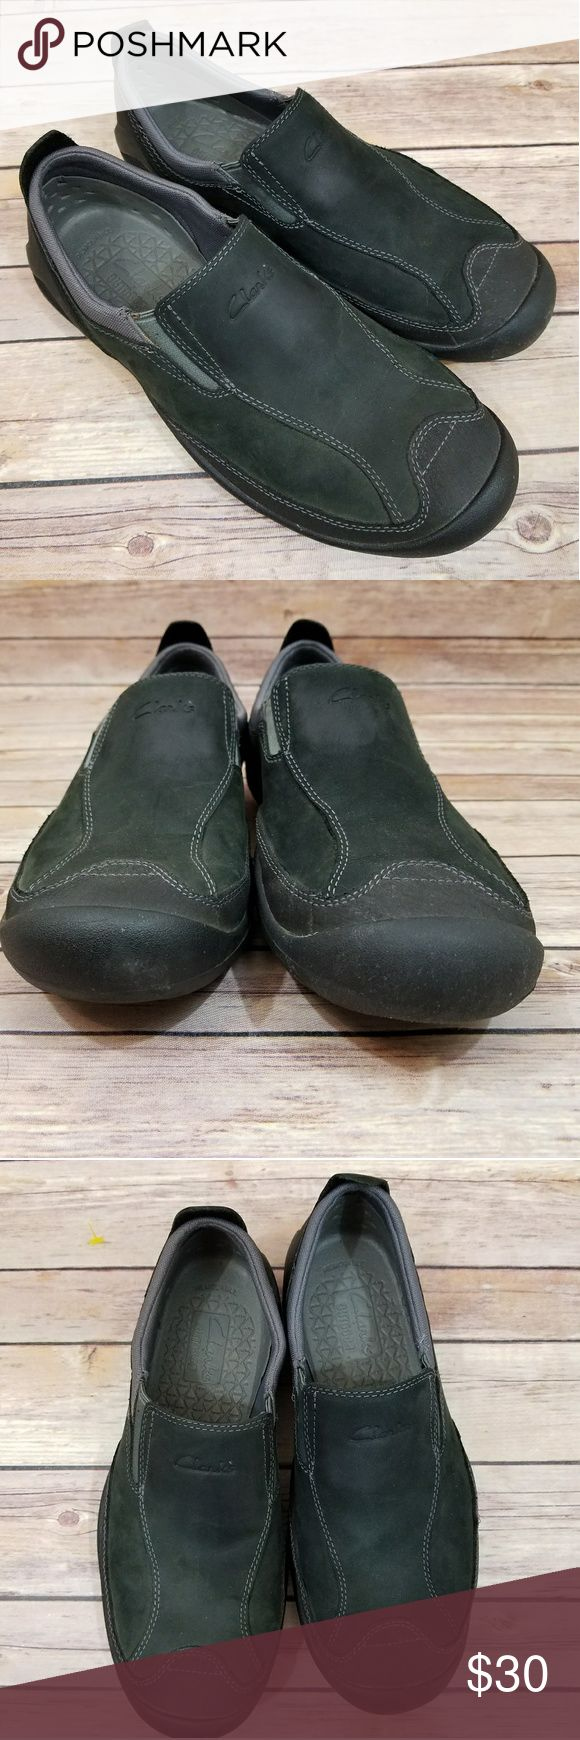 Clarks Rock 8 Men's Slip On Shoes Men's 8.  Removable sole,  very clean.  Slip on style for a quick trip to town! Clarks Shoes Loafers & Slip-Ons